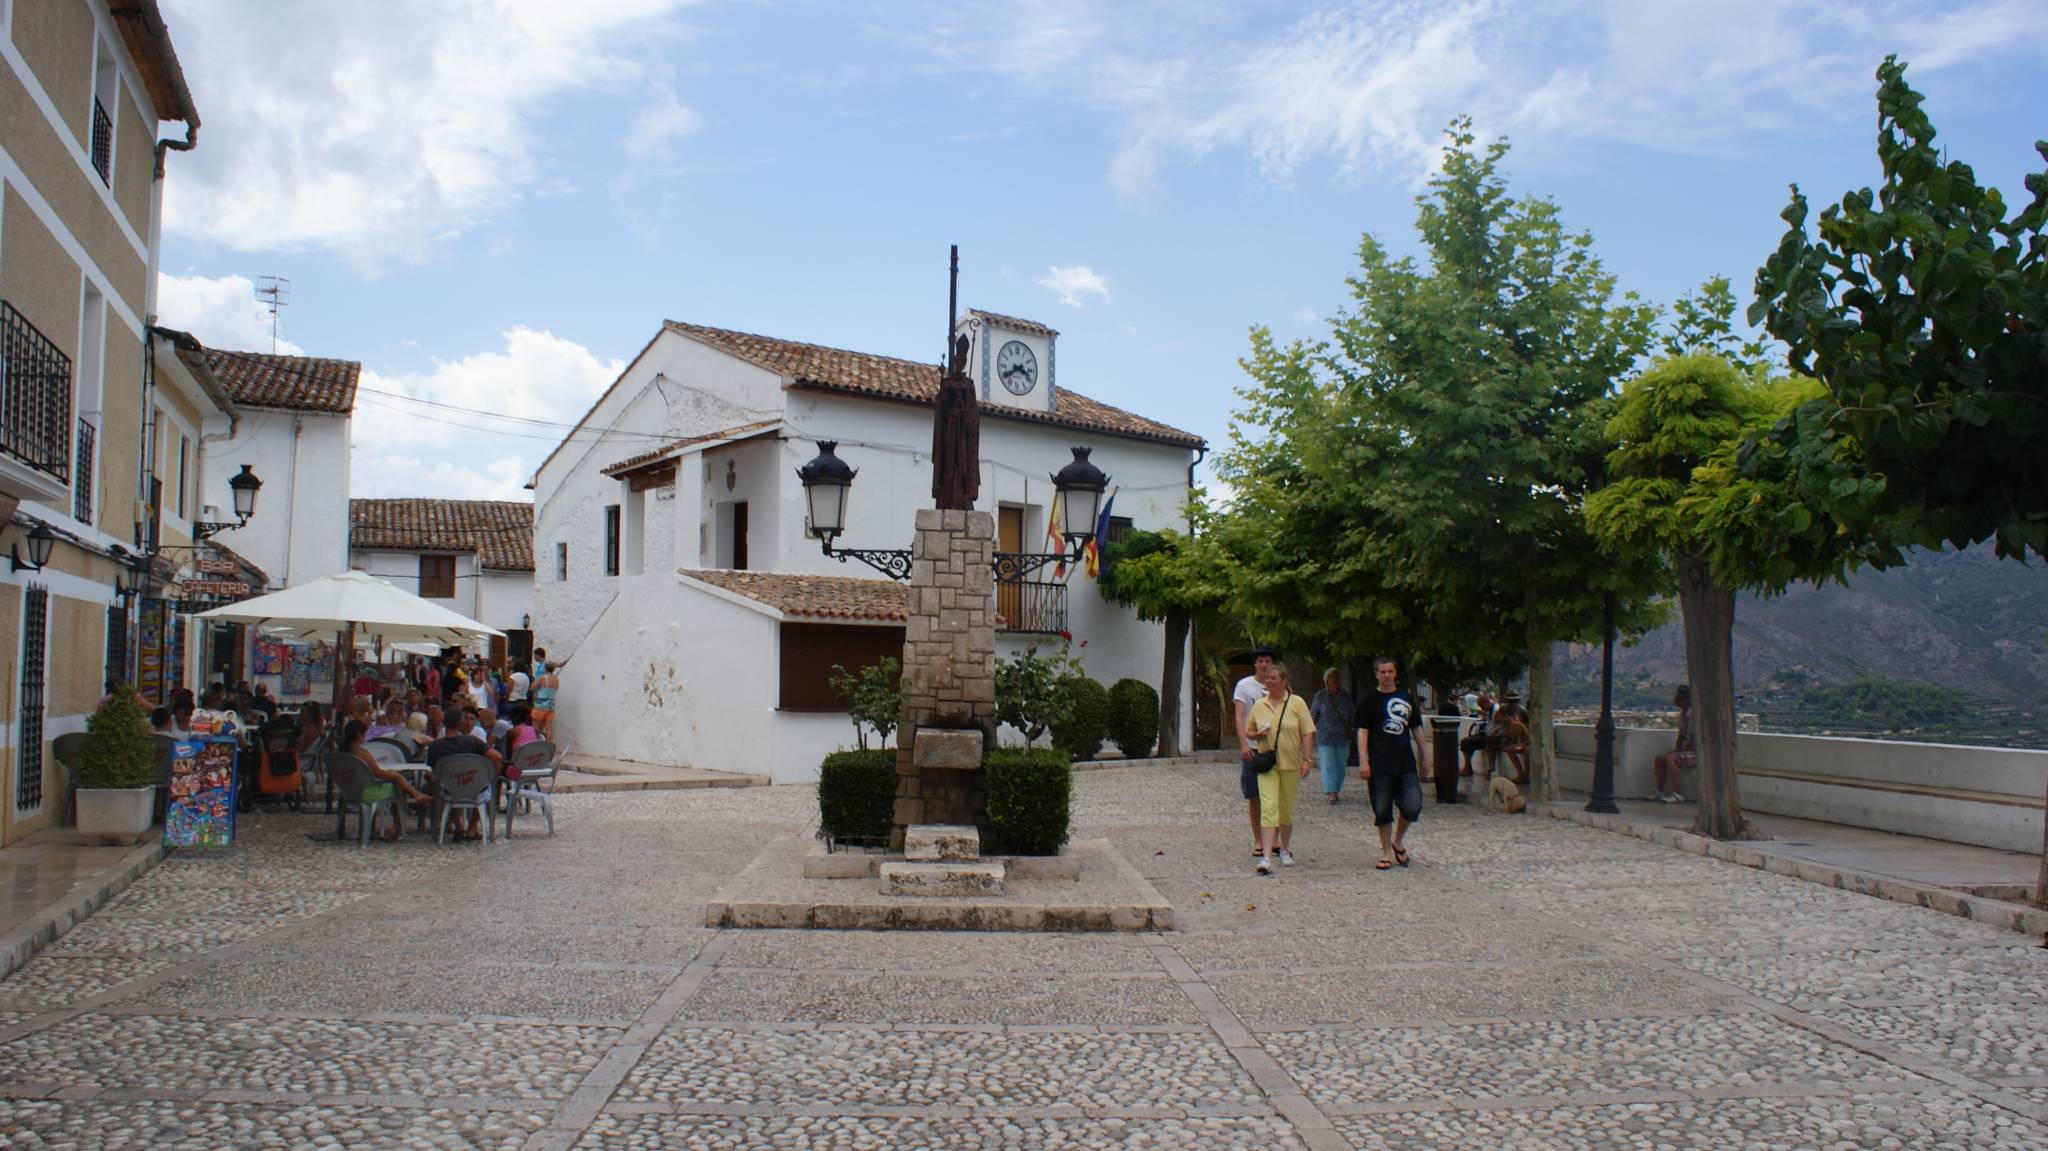 Square with tourists in Guadalest, a village on the Costa Blanca.